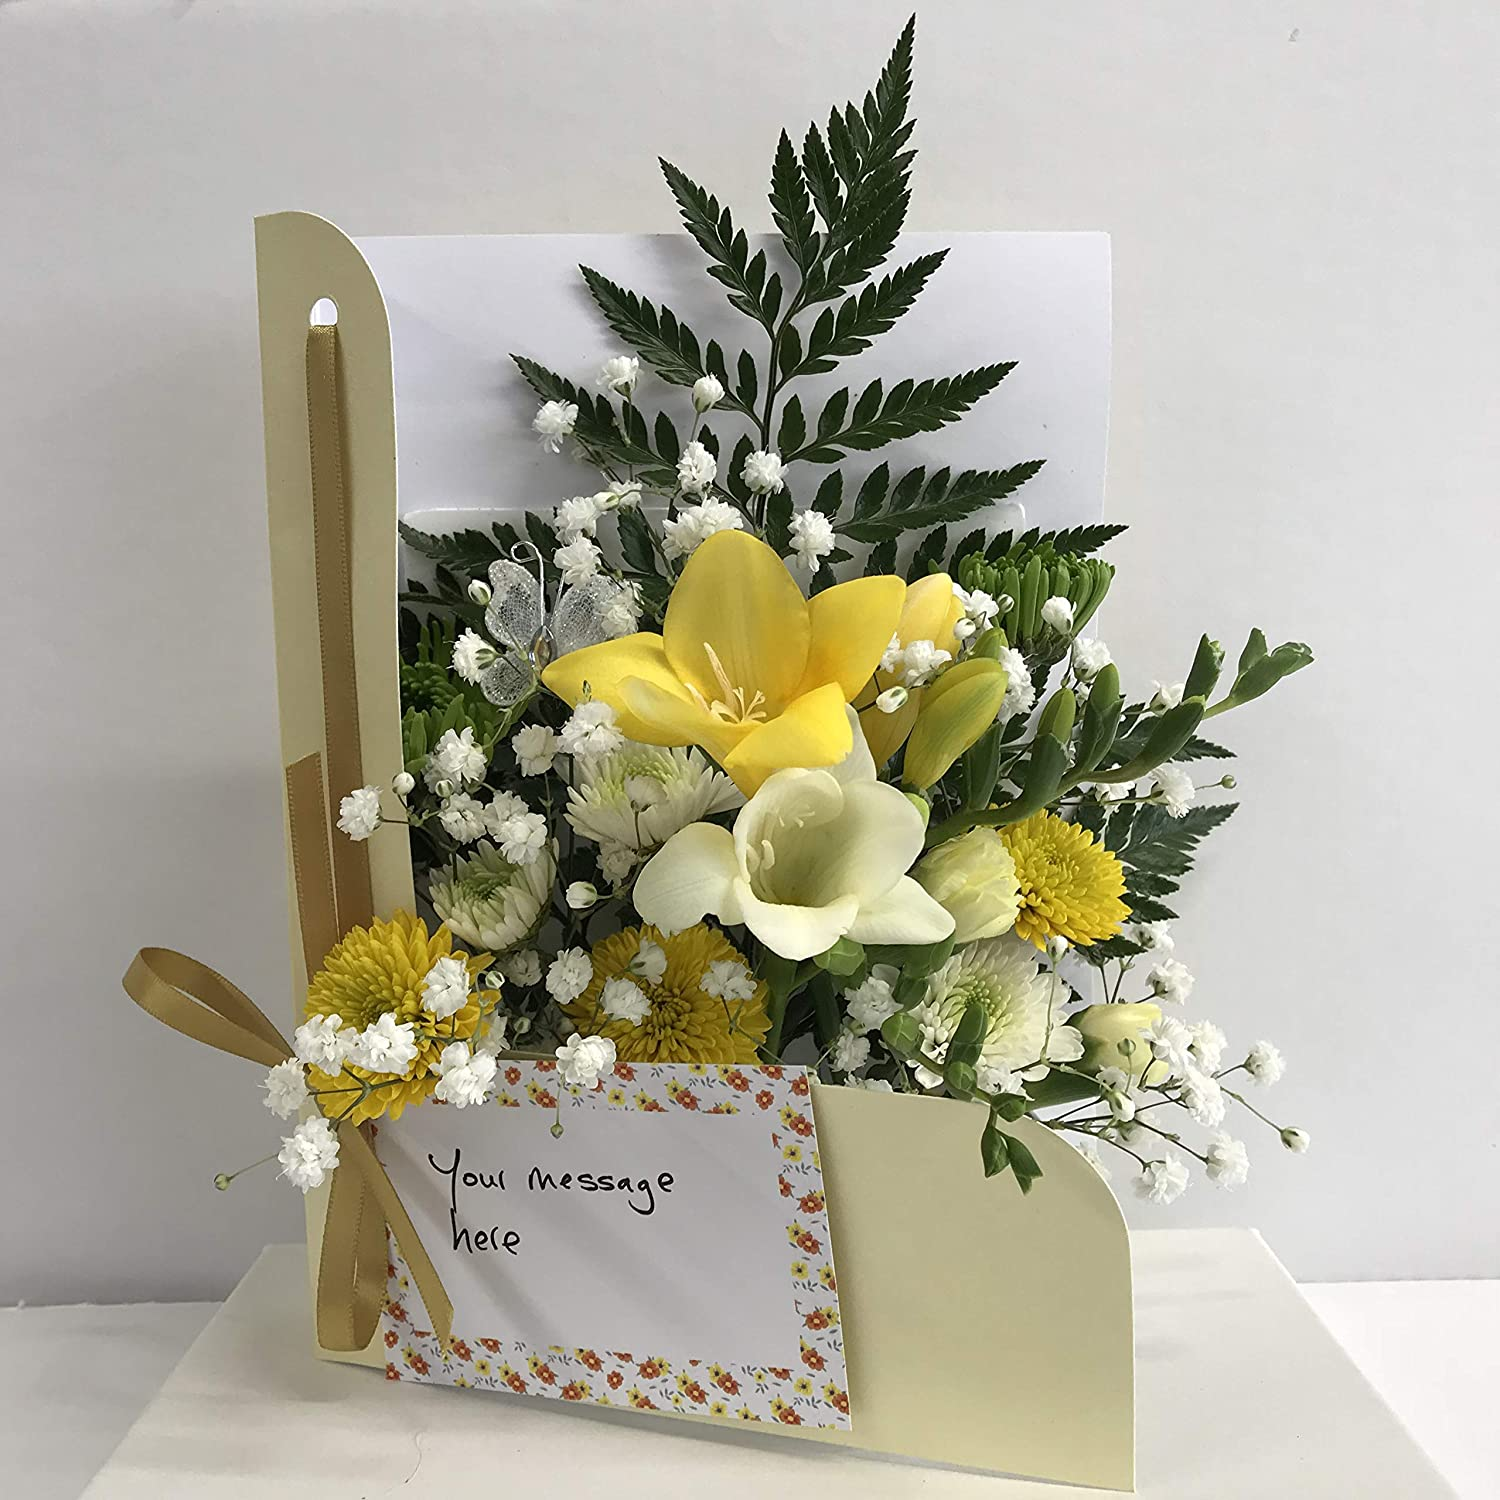 Fresh Flowers delivered -Spring Special Flower Card- Flowers Delivered by Post -CONVENIENT Fits THROUGH LETTERBOX - Birthday - Thank You Gift- Handmade Direct from our own Glasshouse Blooms of Guernsey